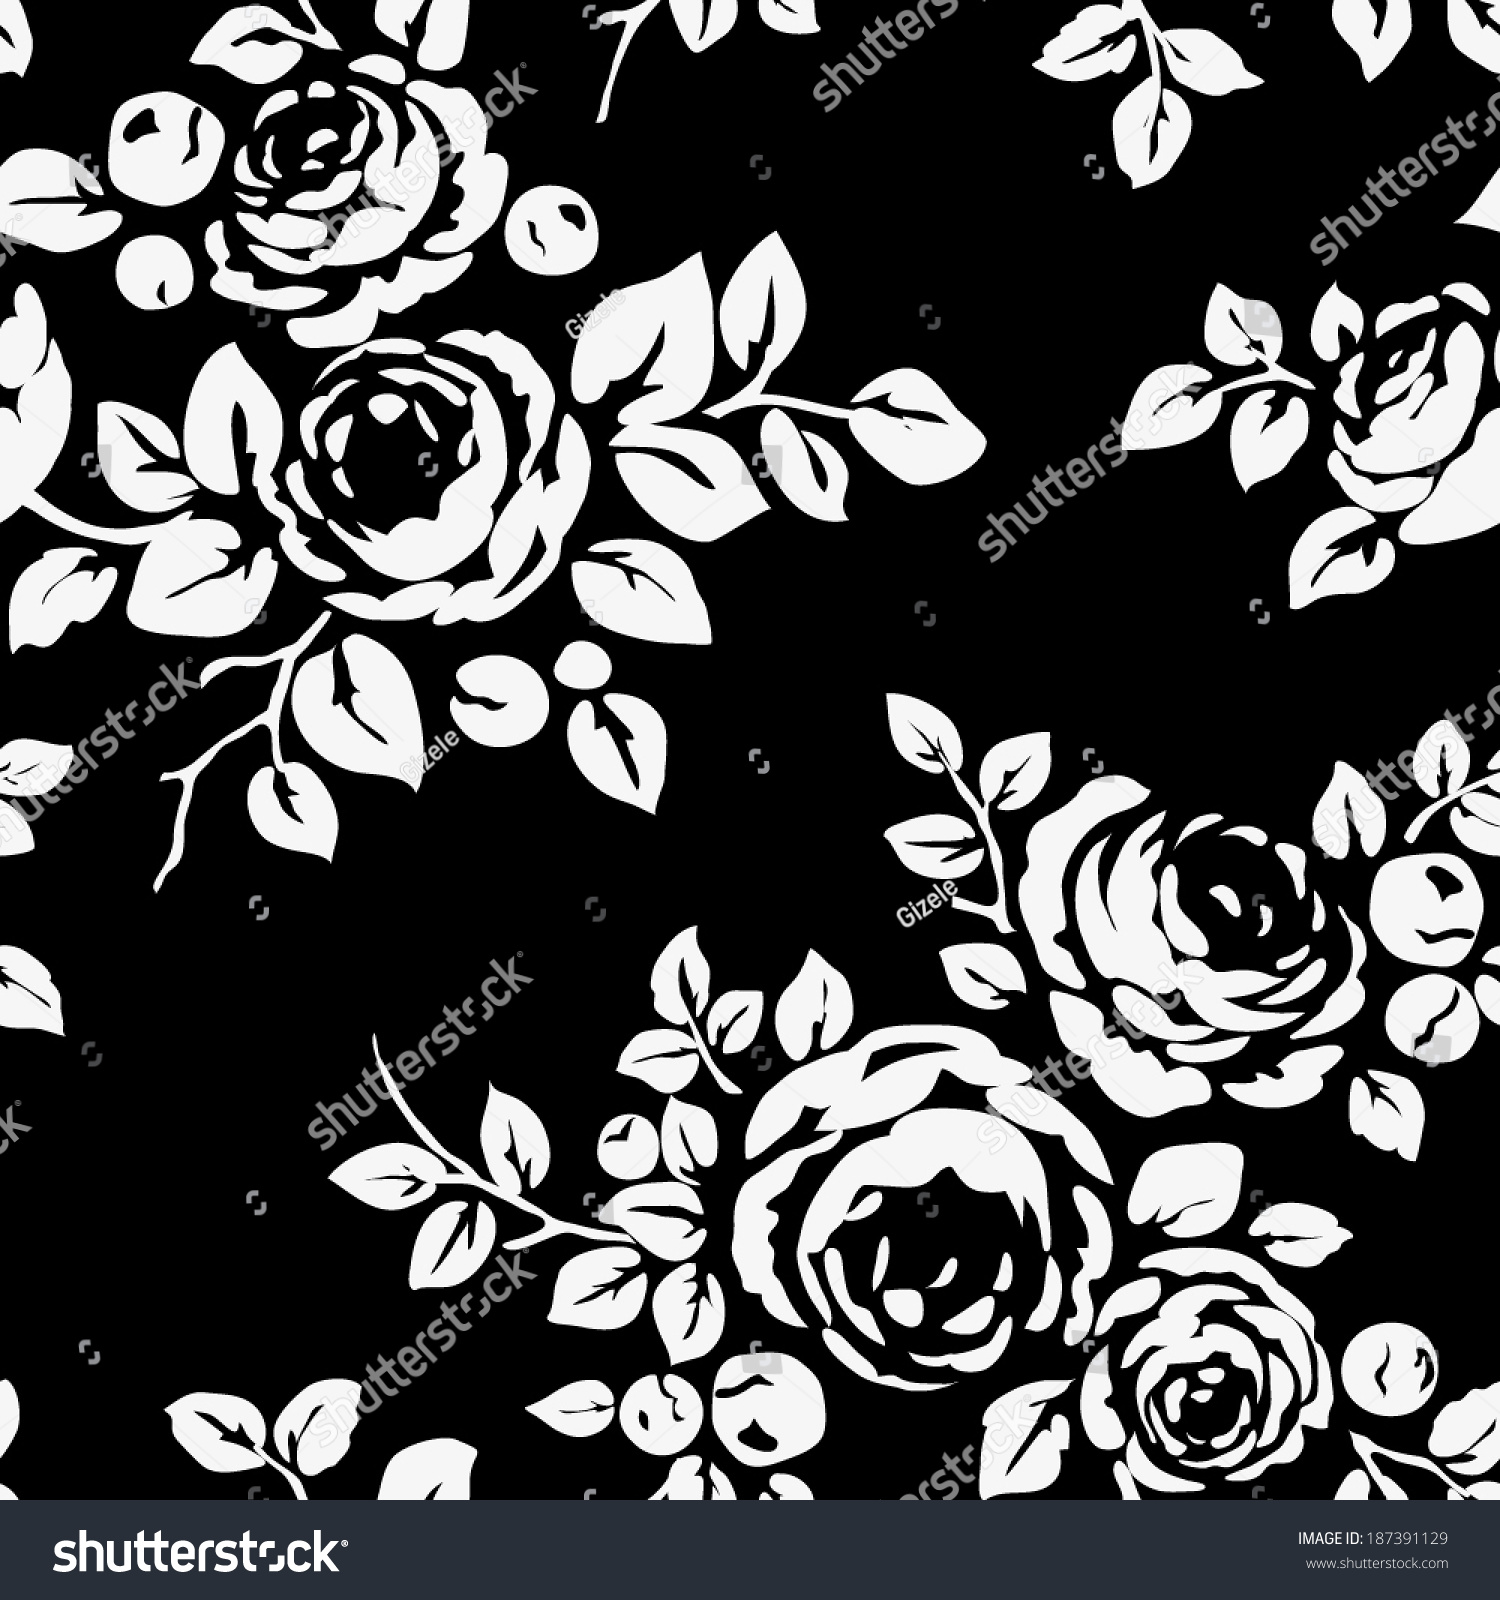 Six Black Flower Design Stock Images: Seamless Vintage Pattern Flowers Black Monochrome Stock